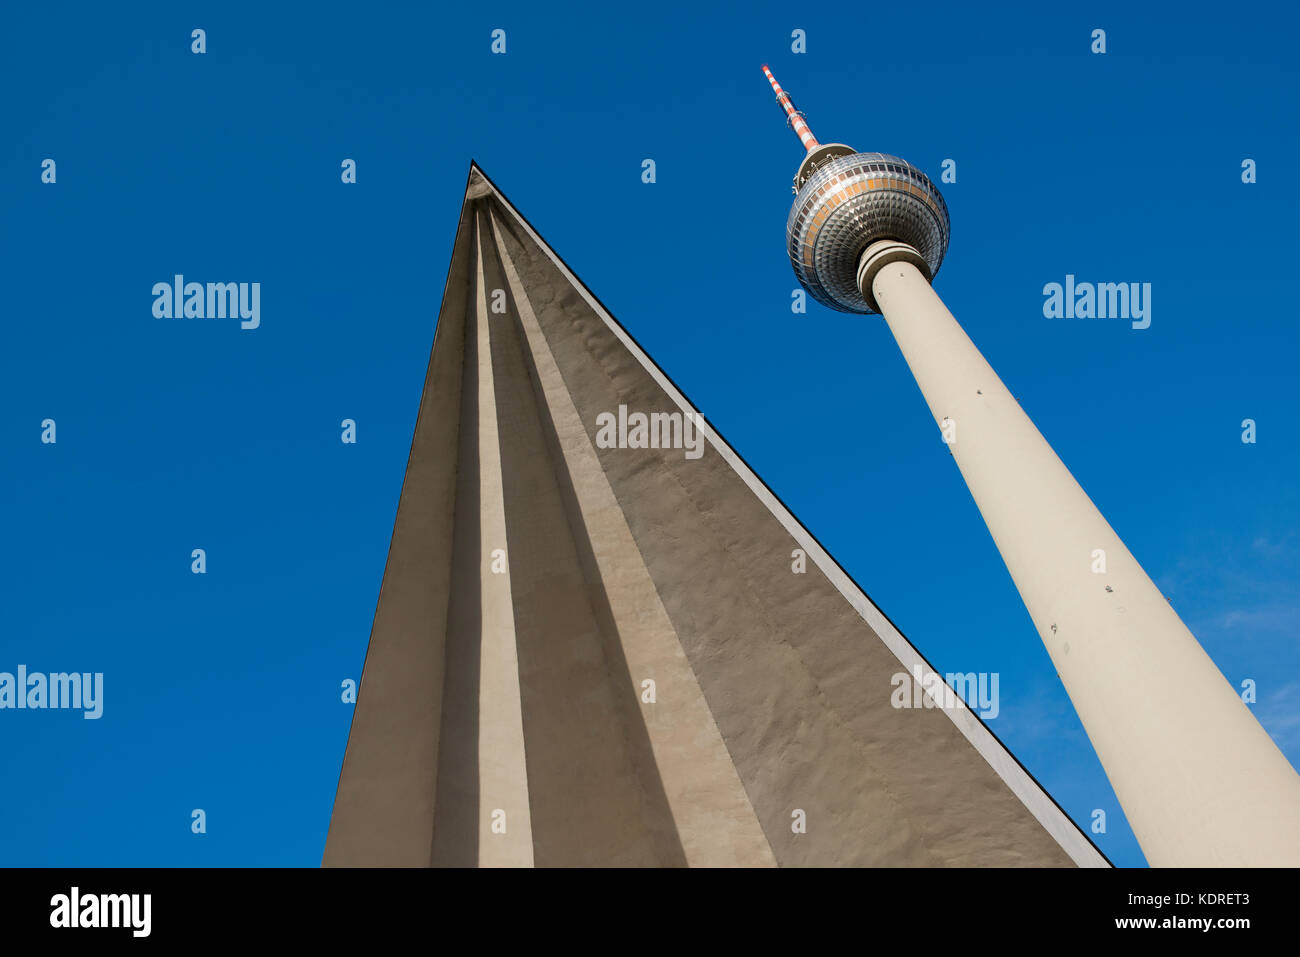 The Fernsehturm television tower in Berlin, Germany - Stock Image